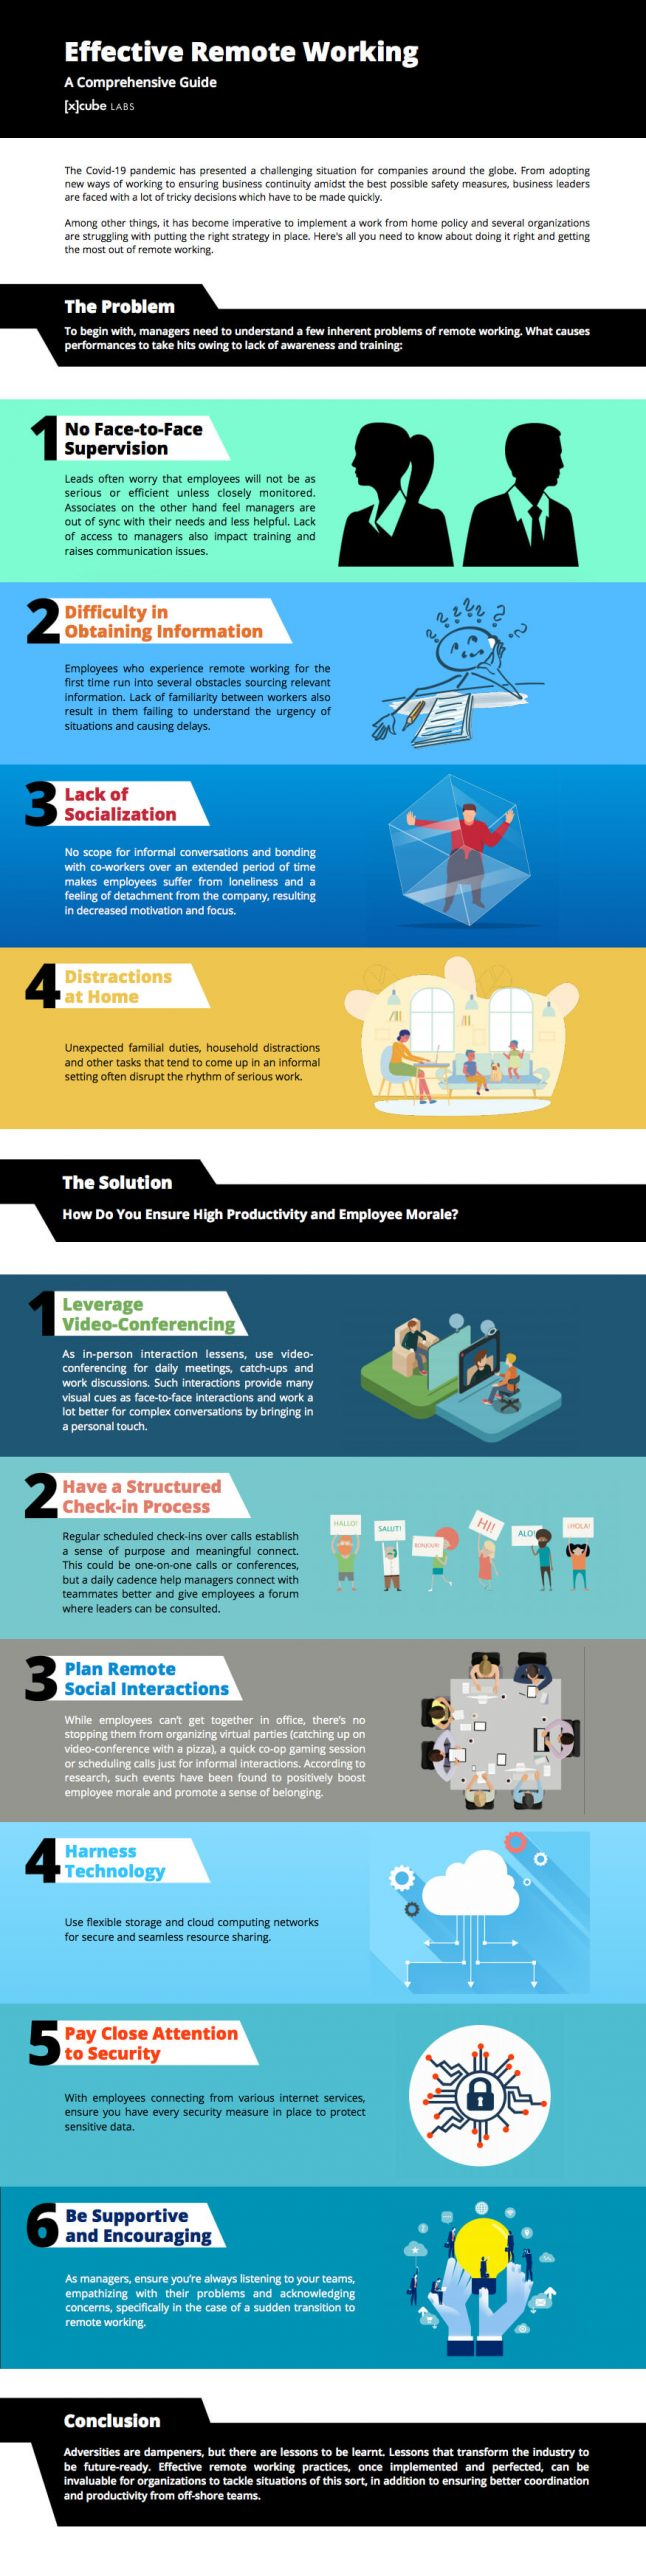 remote-working-guide-covid-19-infographic